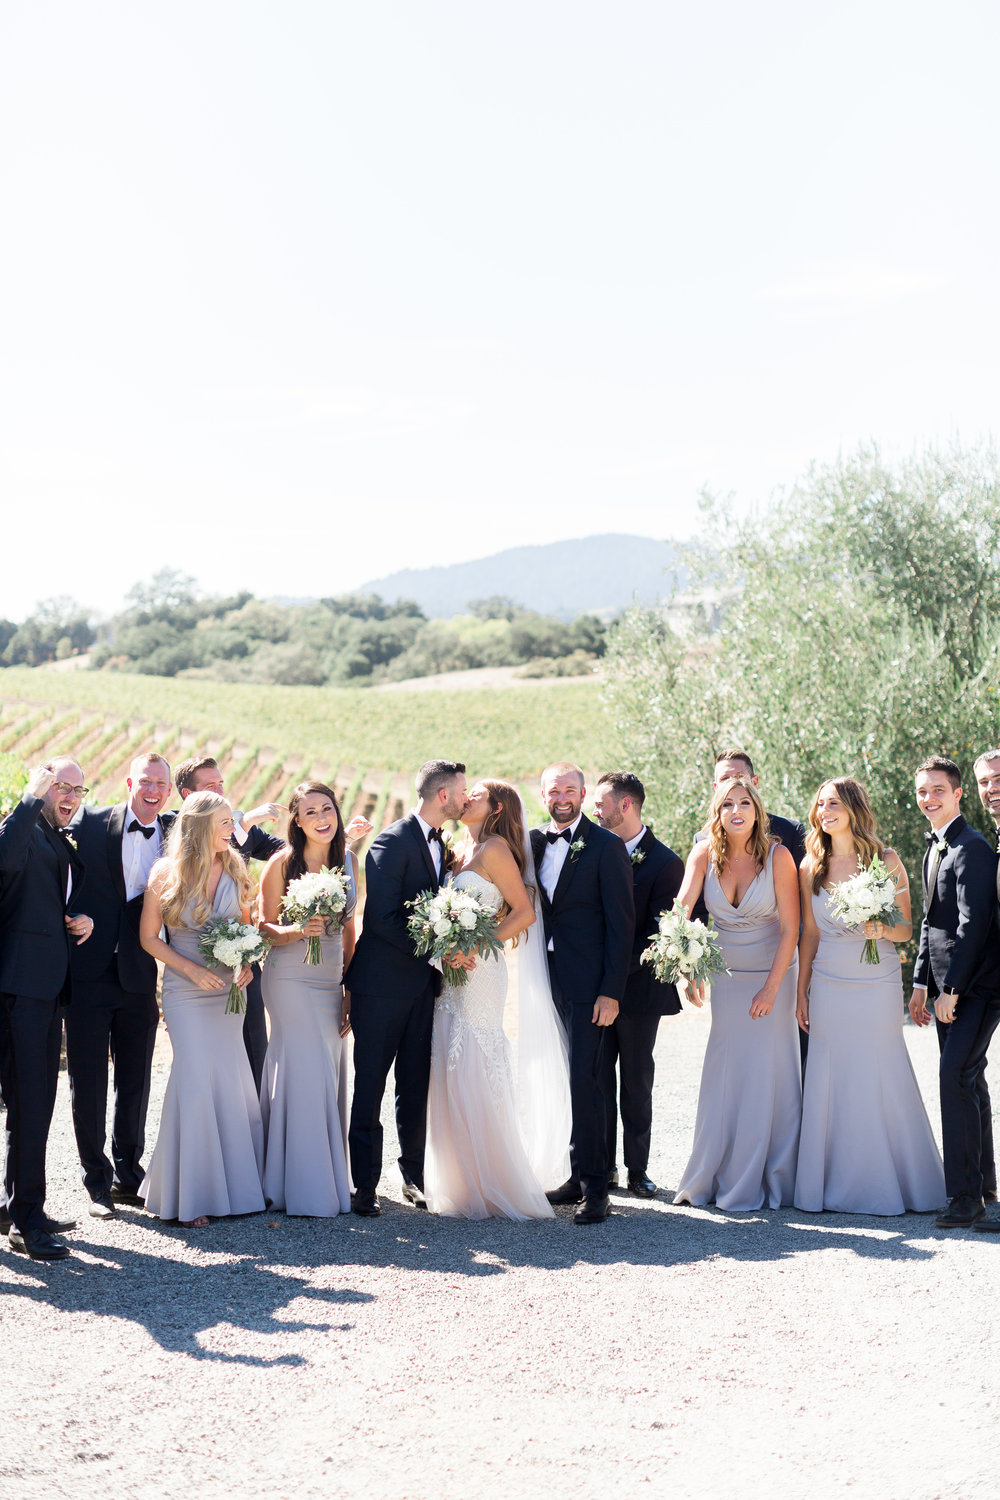 Calegari-Vineyards-Healdsburg-Wedding-Photographer (94 of 262).jpg